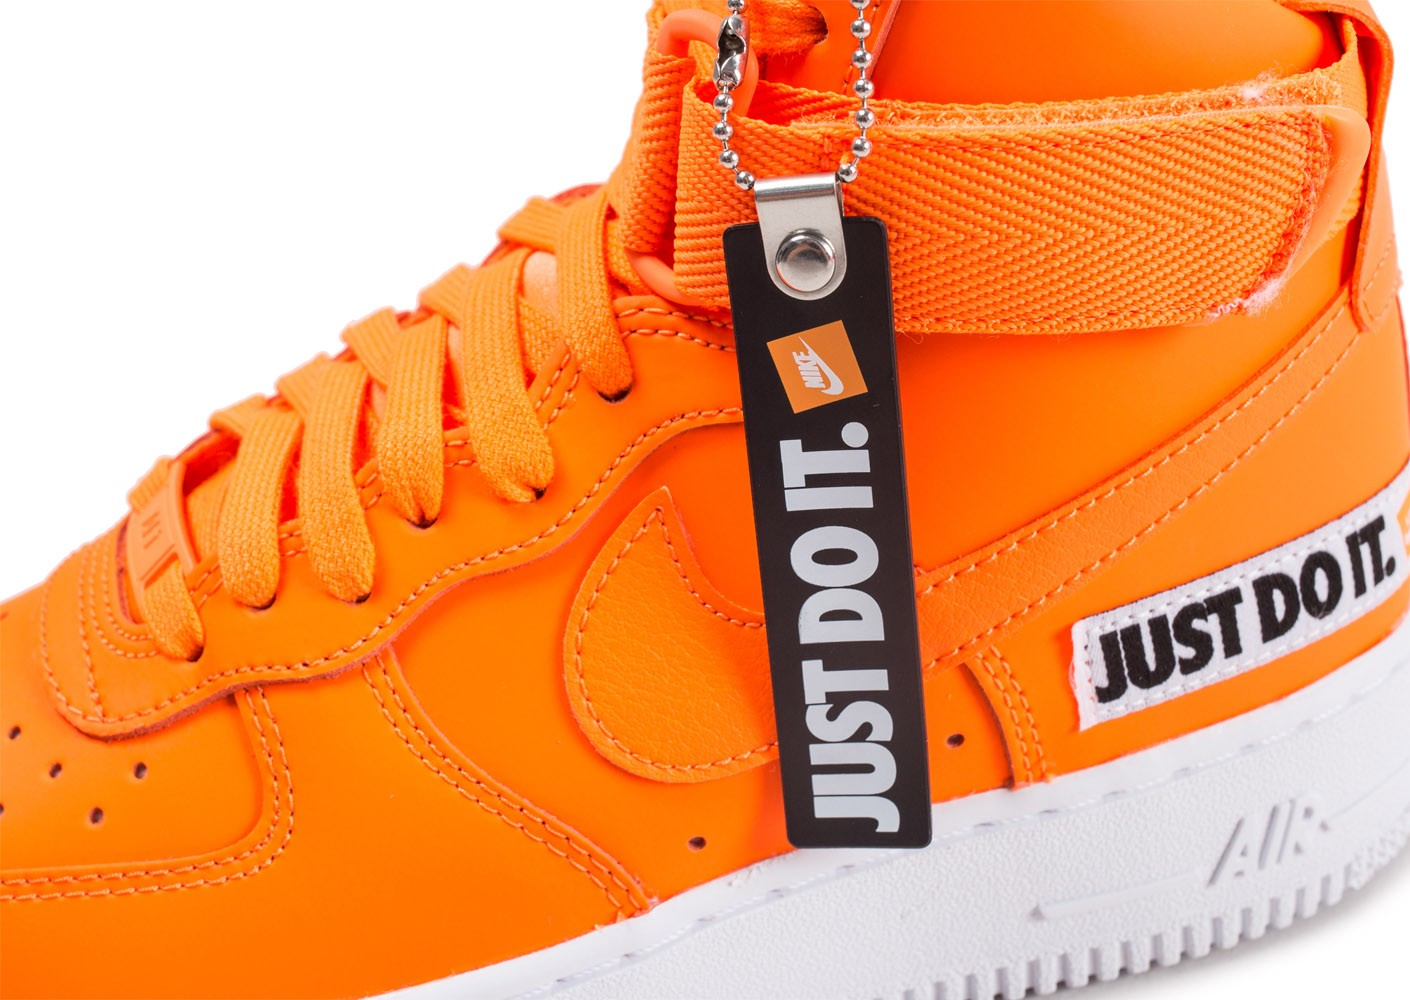 low priced 71f13 4b527 ... Chaussures Nike Air Force 1 High LX Leather JDI orange femme vue dessus